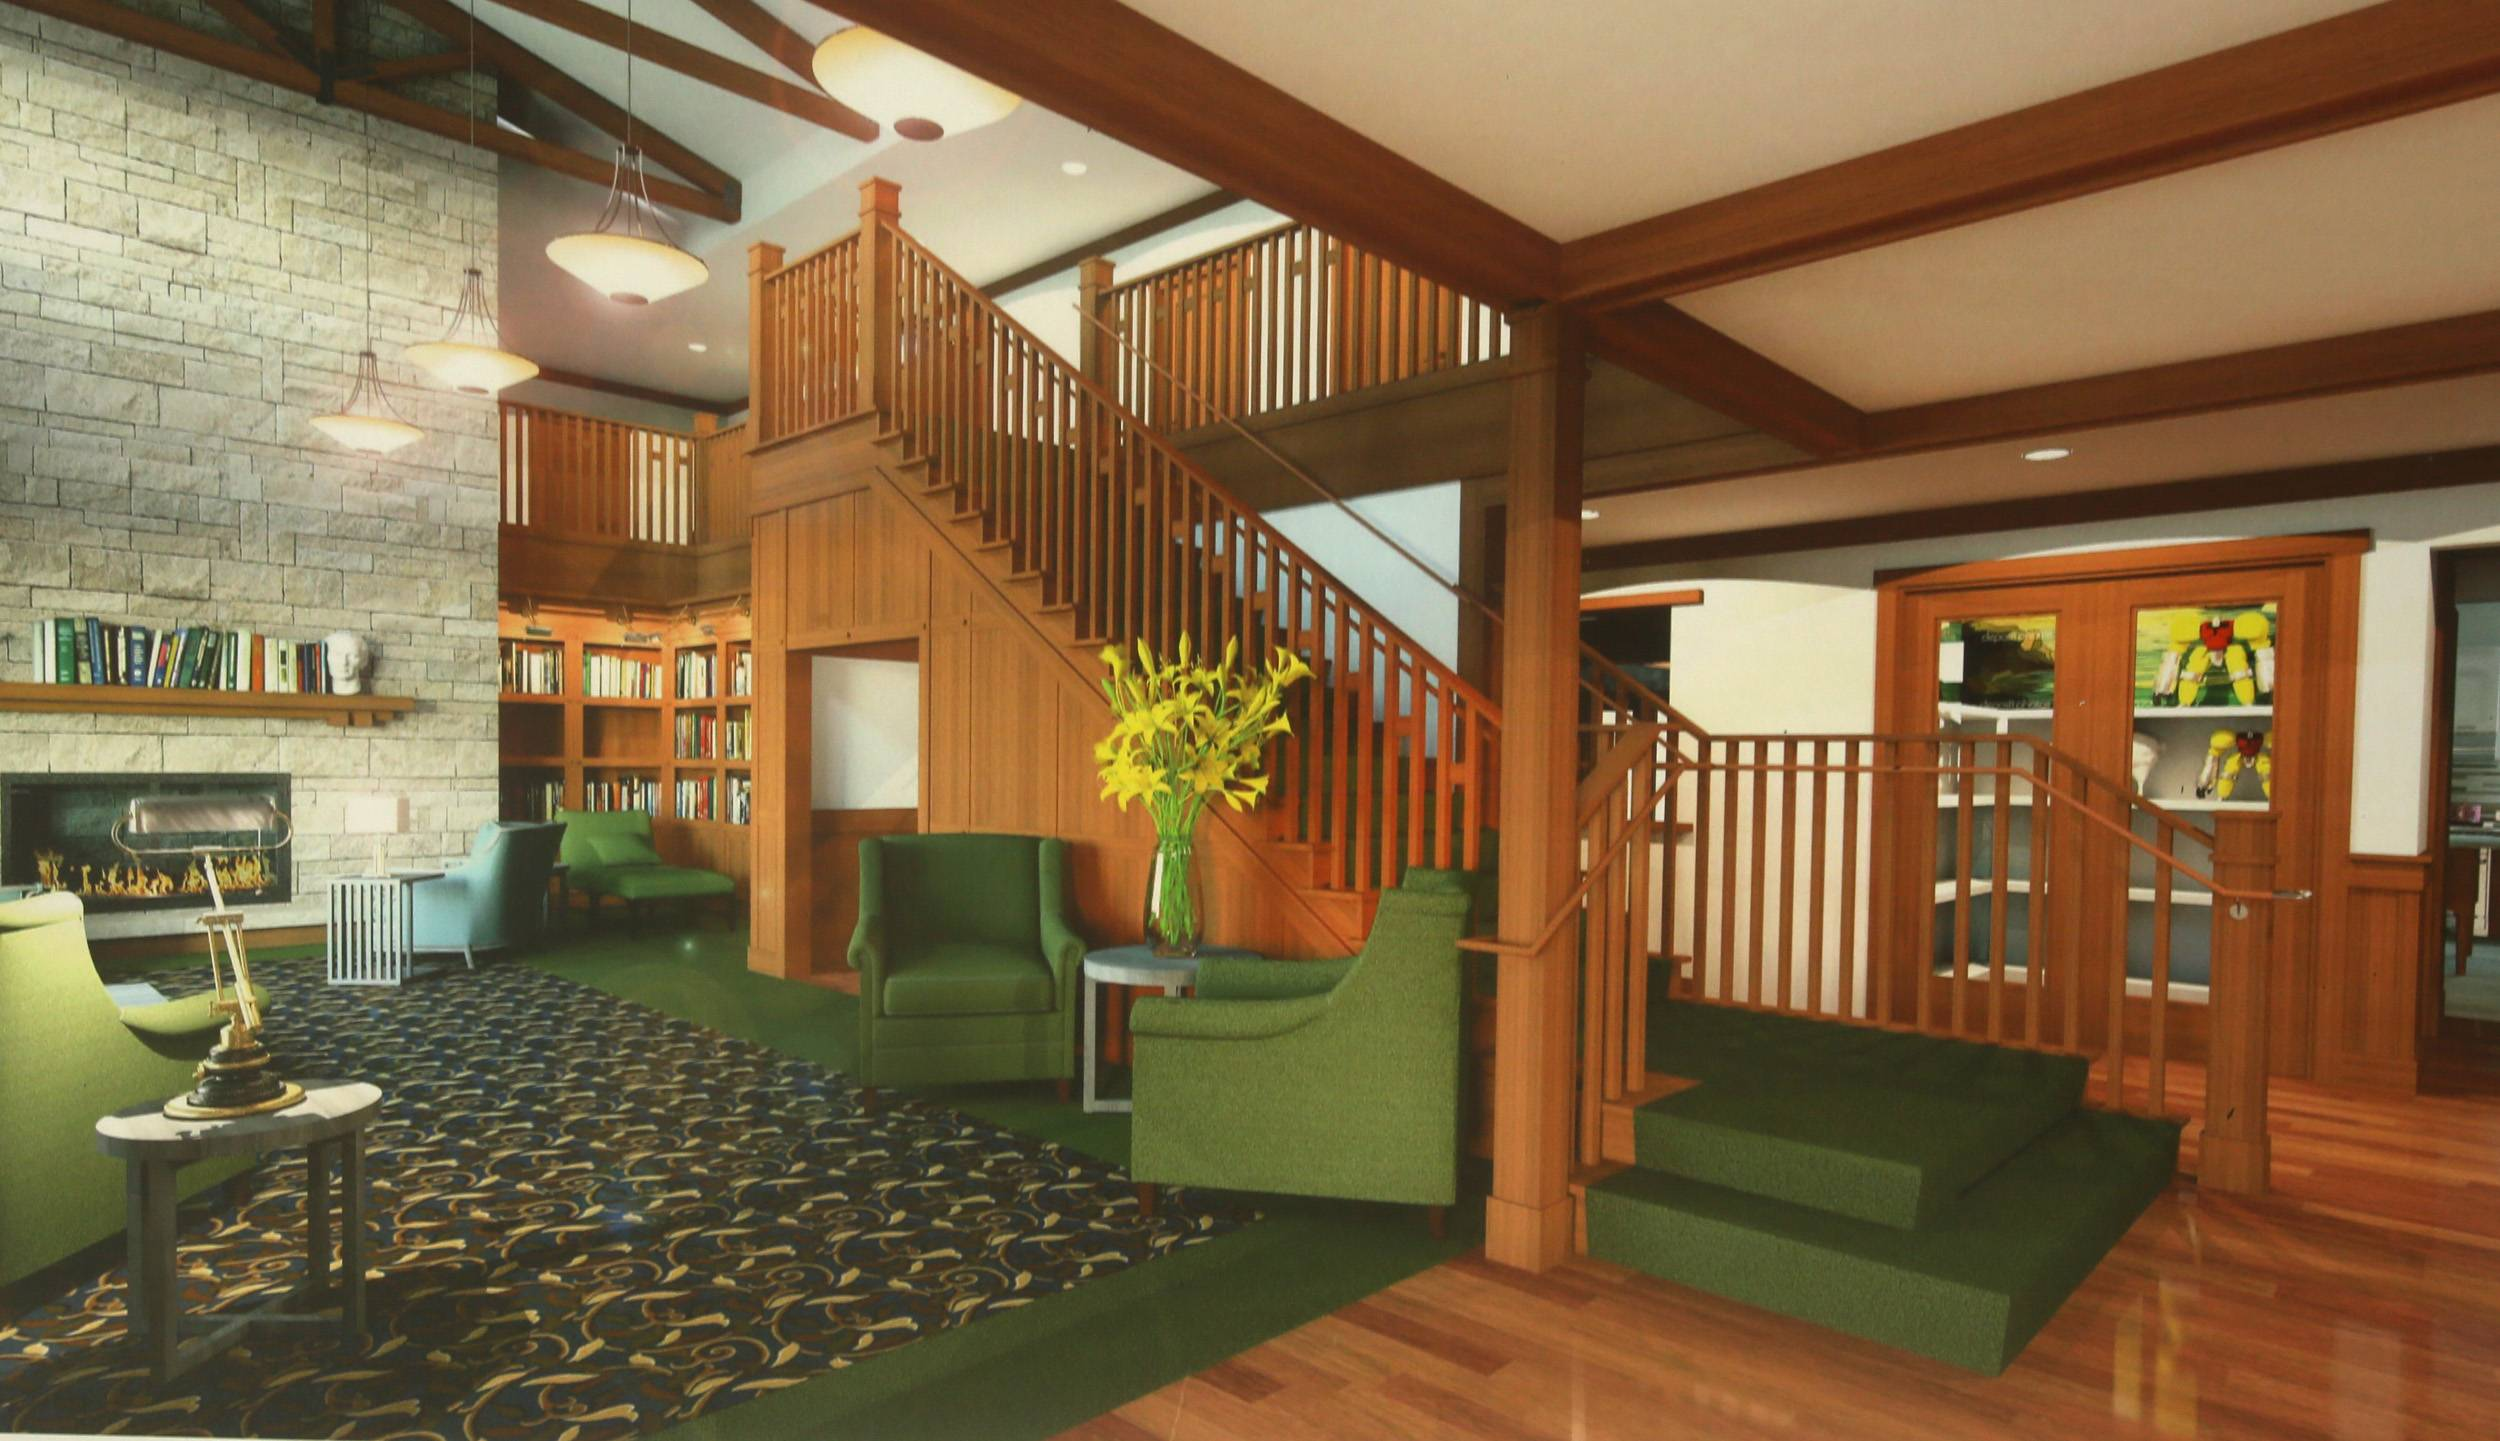 This is a sketch showing what the interior of the Ronald McDonald House will look like.